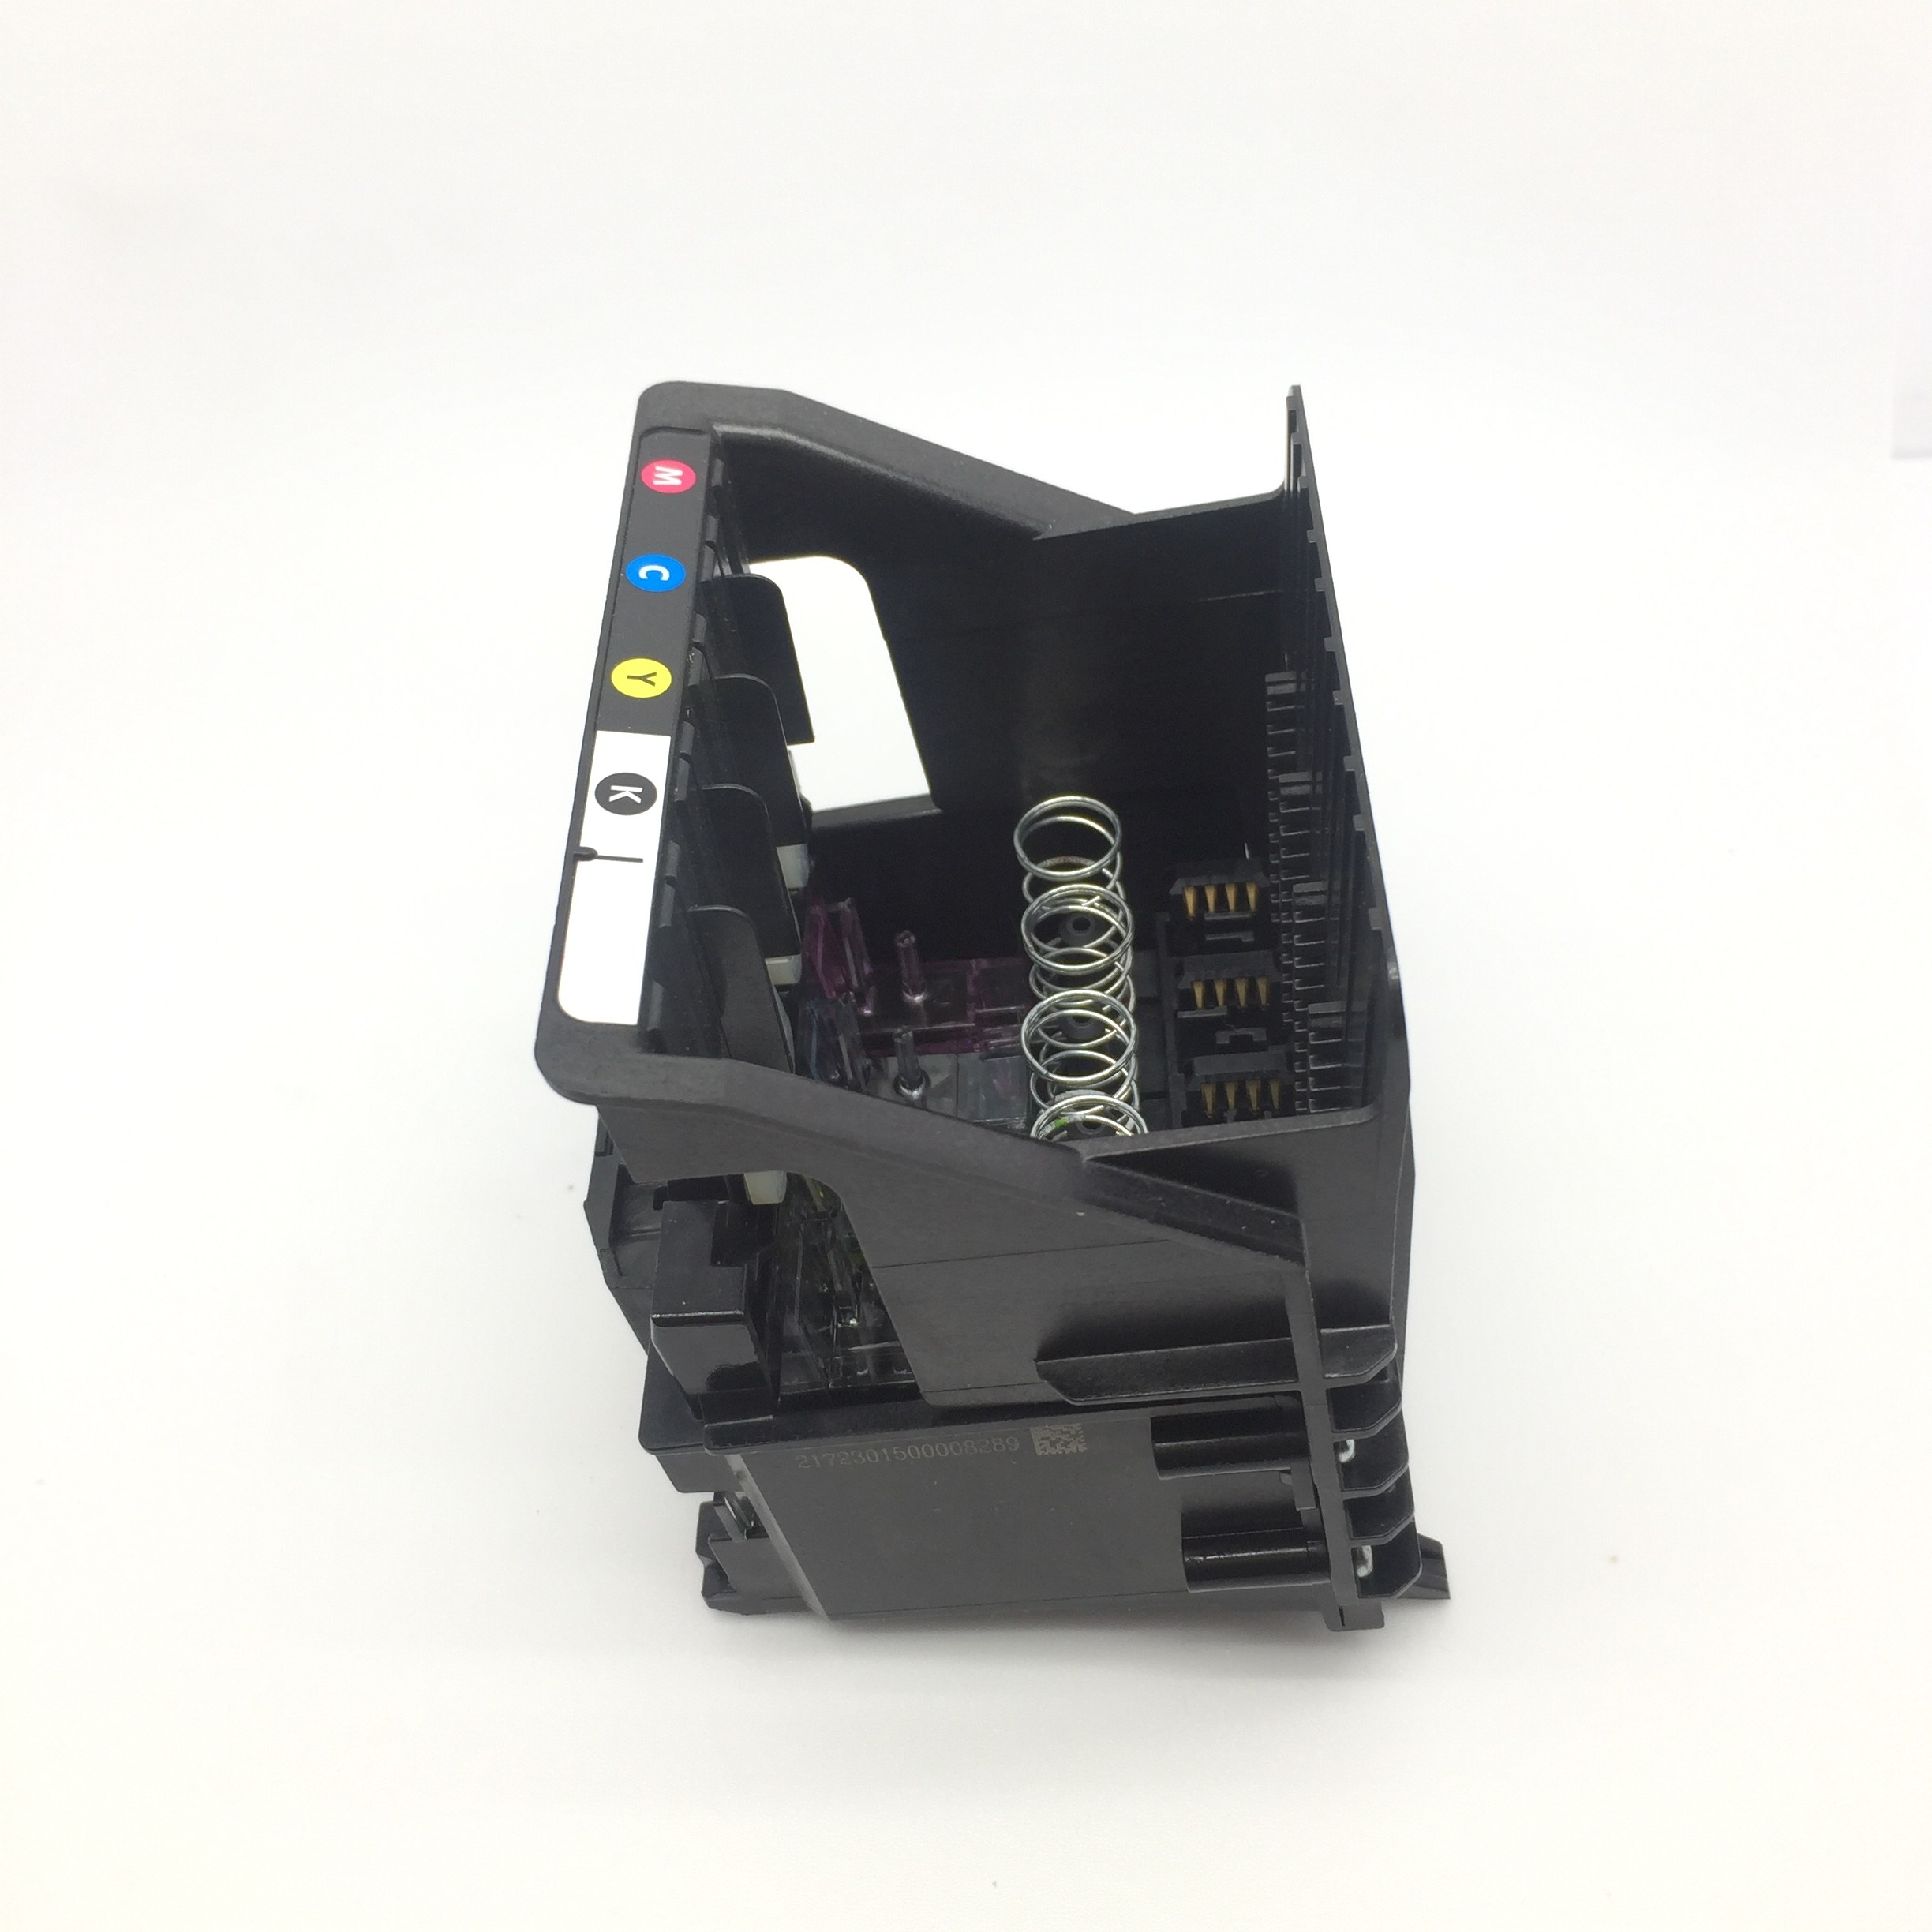 952 Printhead For Hp Officejet Pro 7740 8210 8216 8702